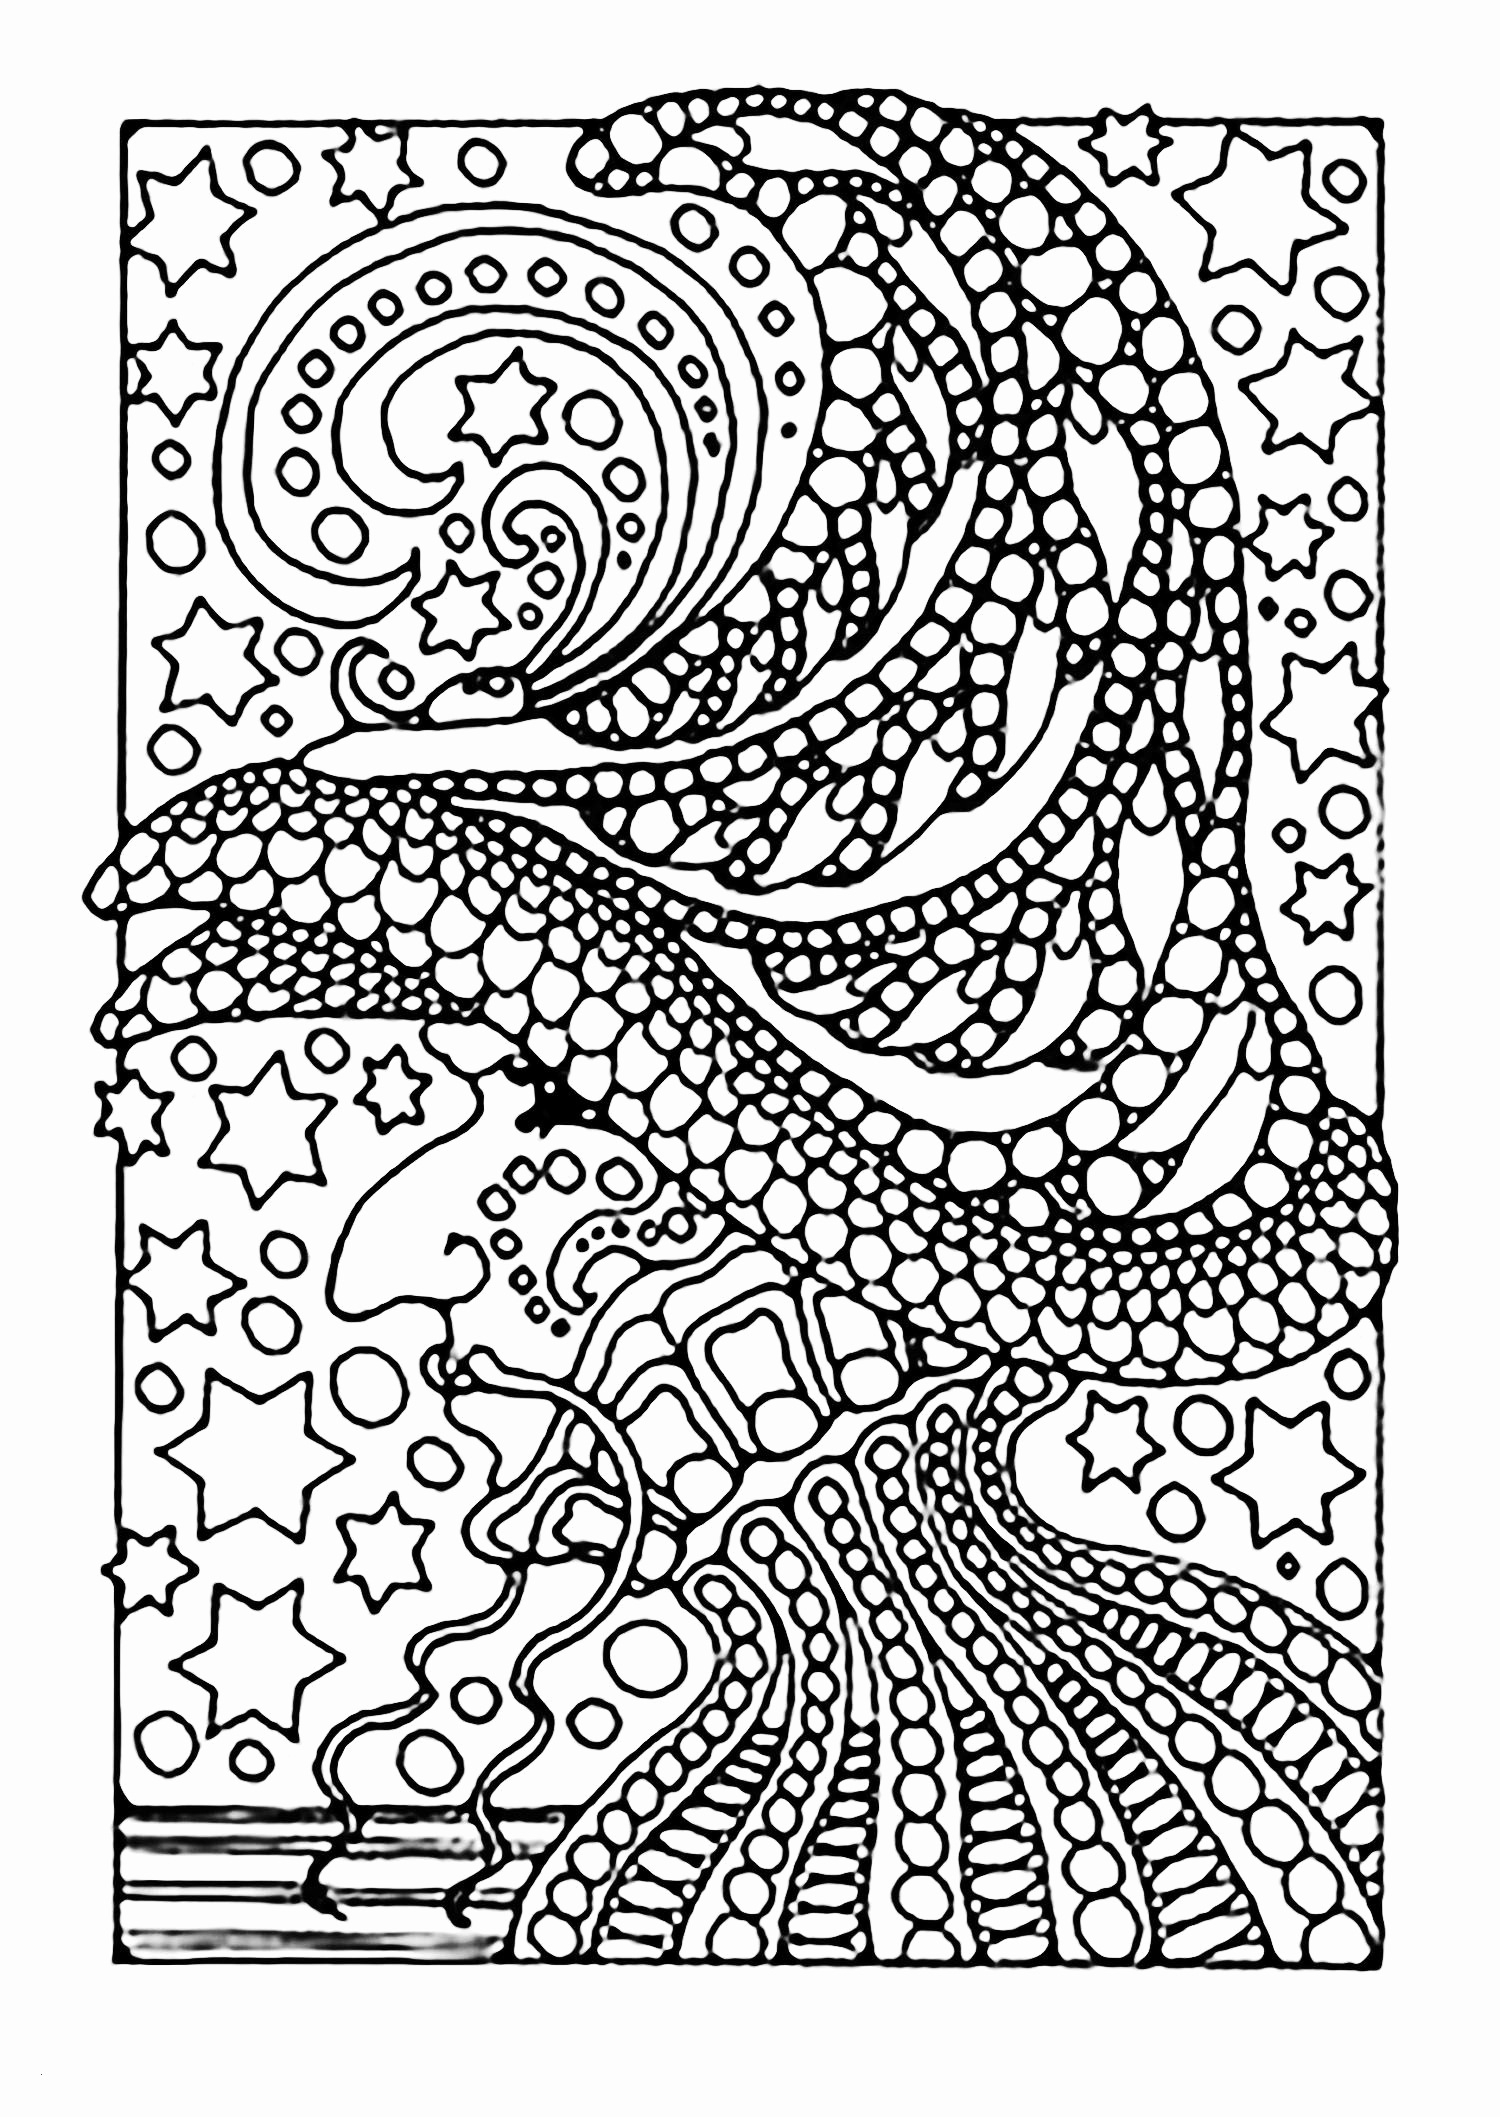 Wallpaper Coloring Pages  Download 16j - Free For kids